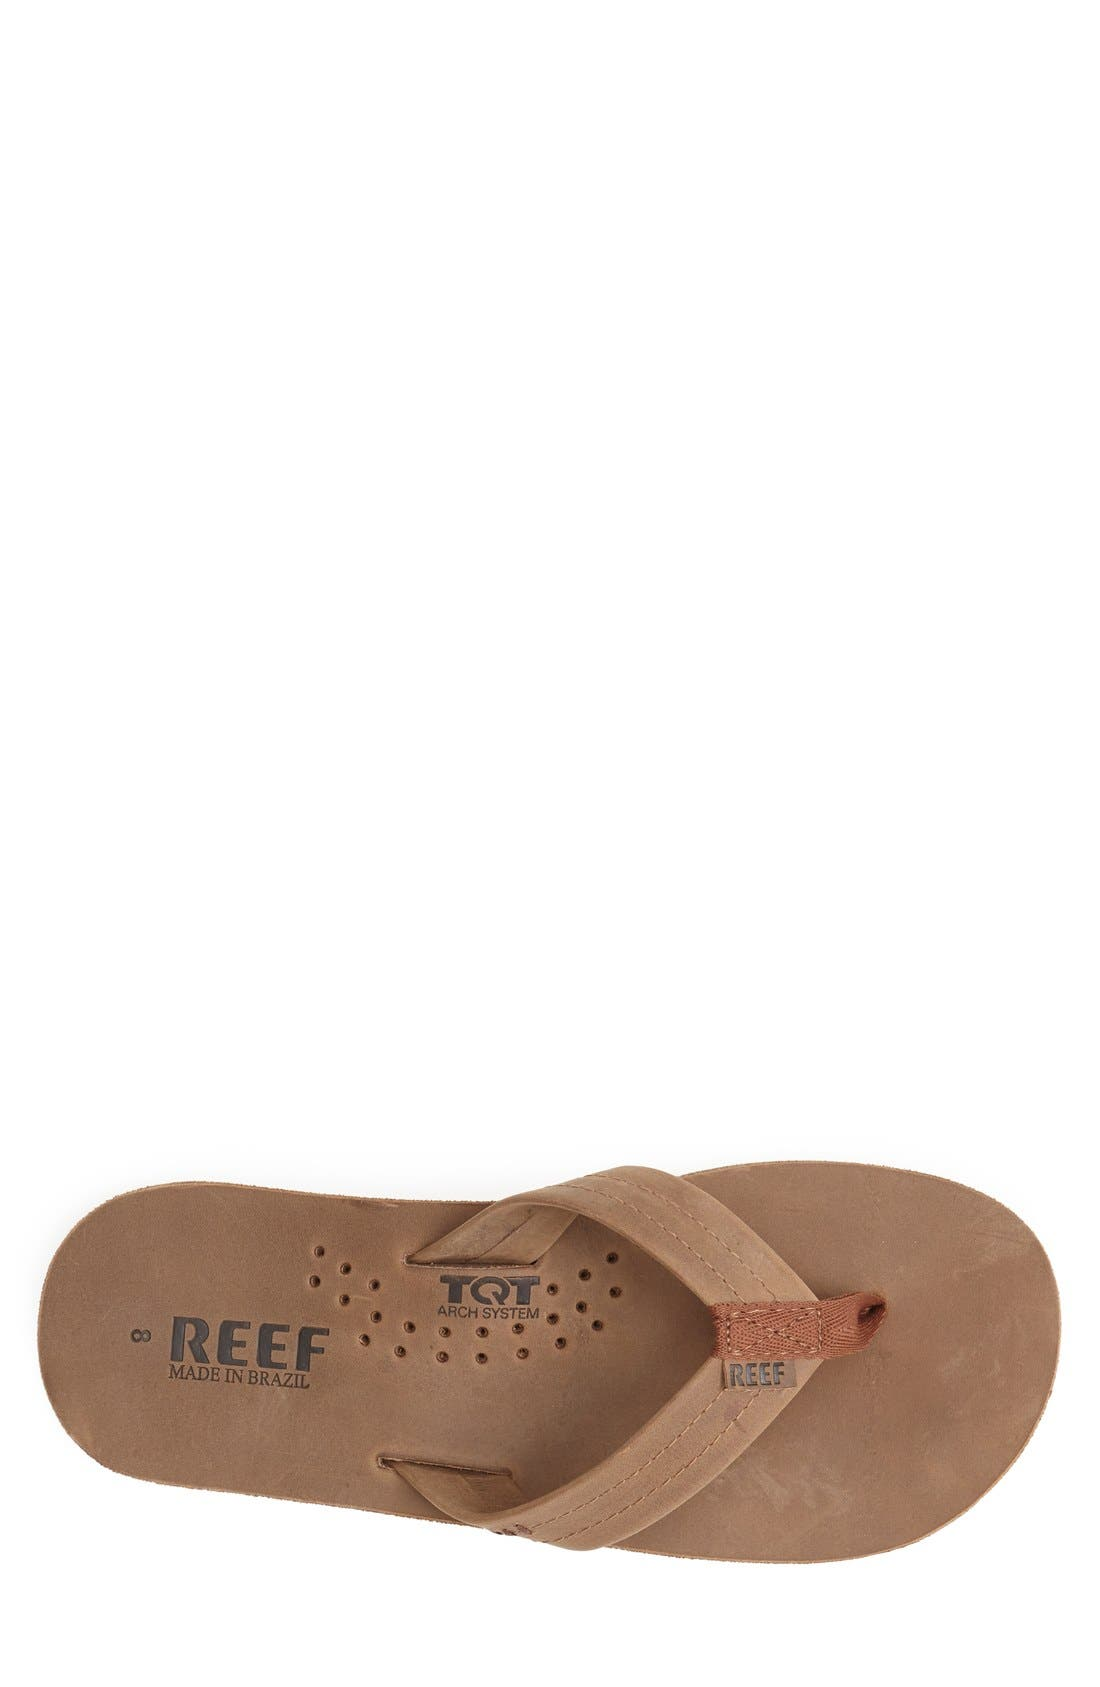 Alternate Image 3  - Reef 'Draftsmen' Leather Flip Flop (Men)